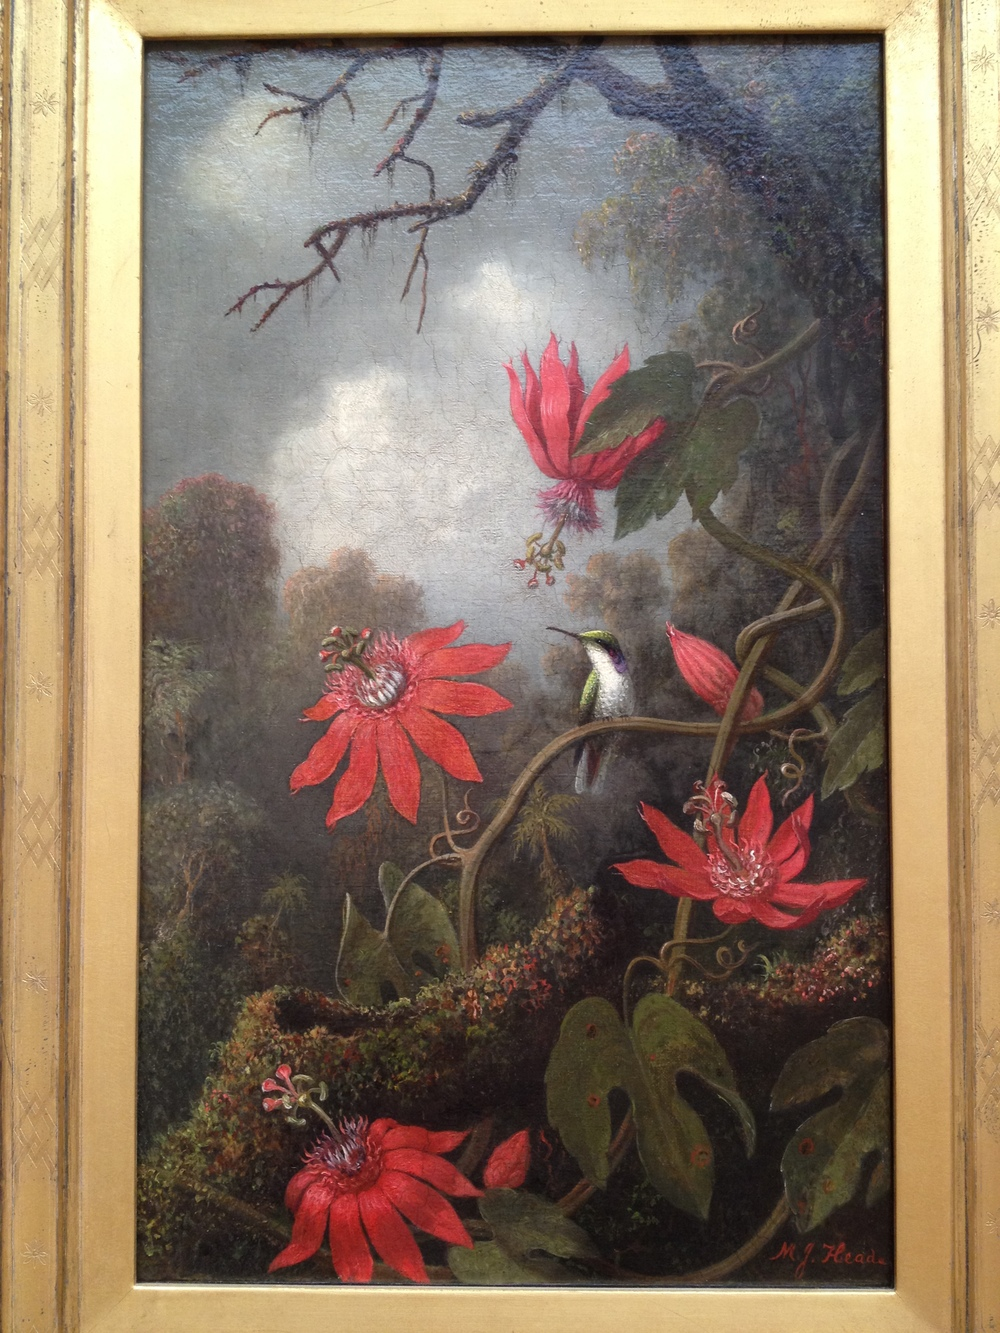 Hummingbirds and Passionflowers Martin Johnson Heade c 1875-85 Oil on canvas